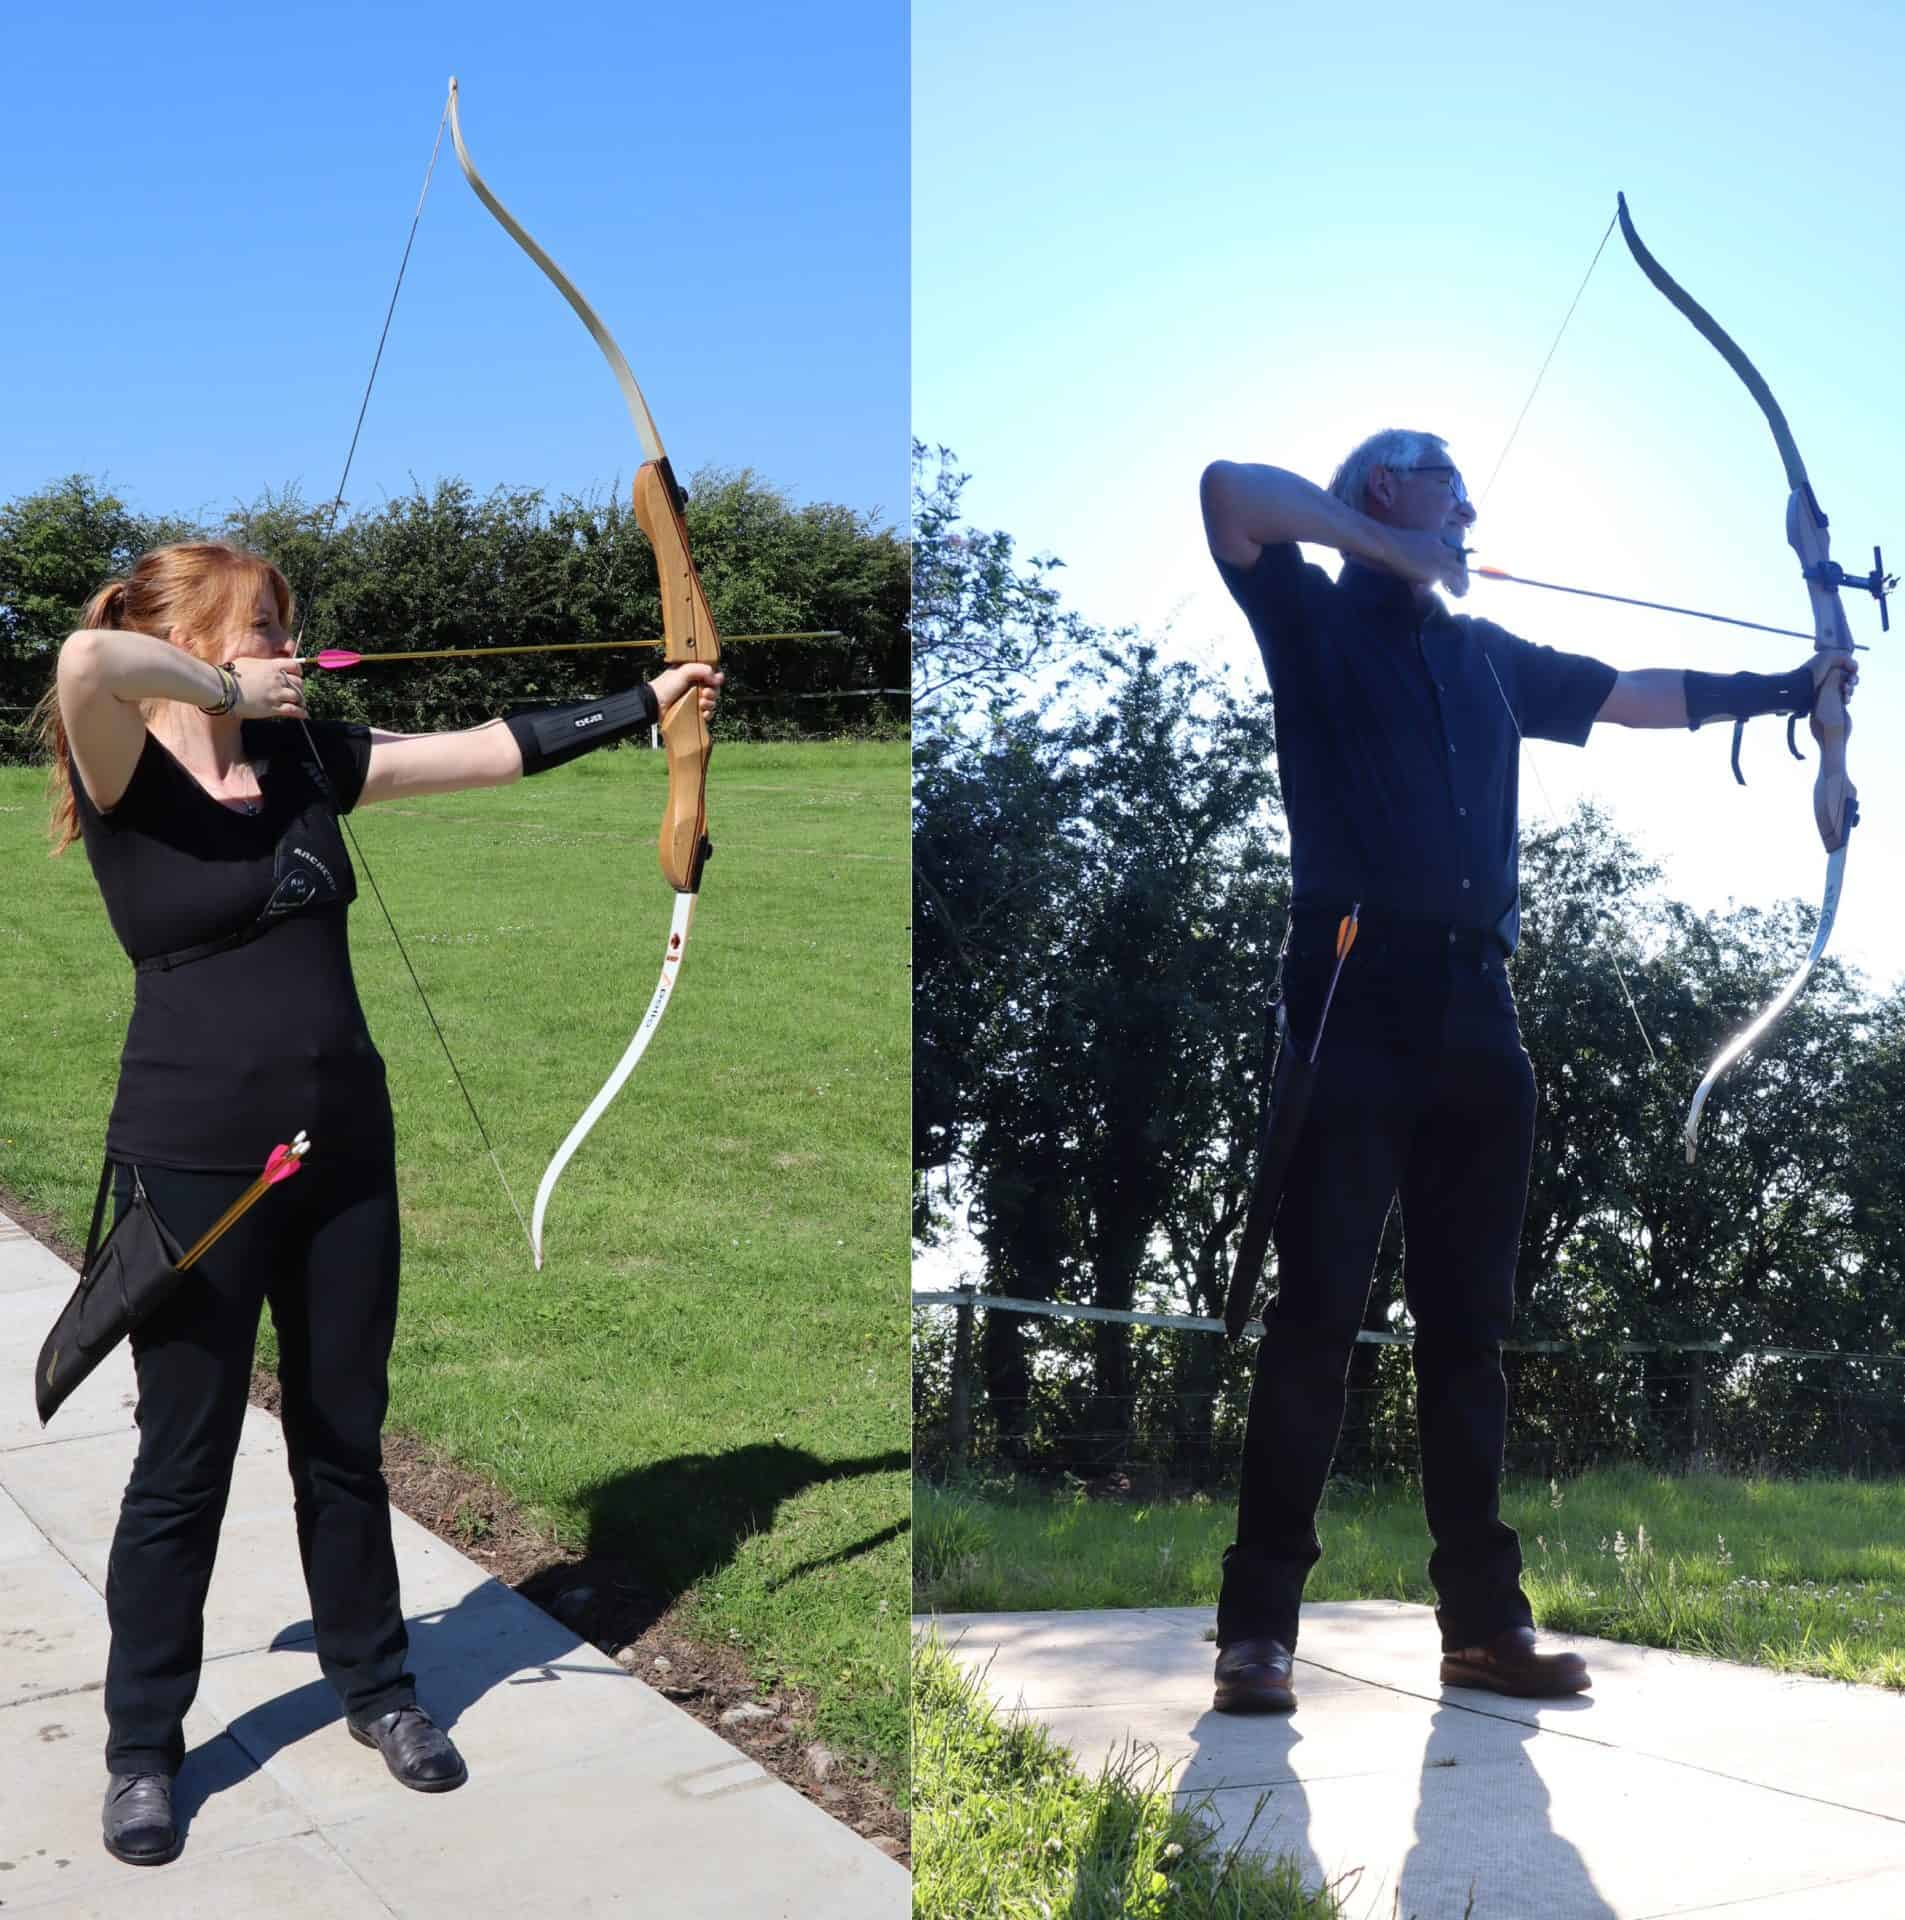 Archers on beginners course